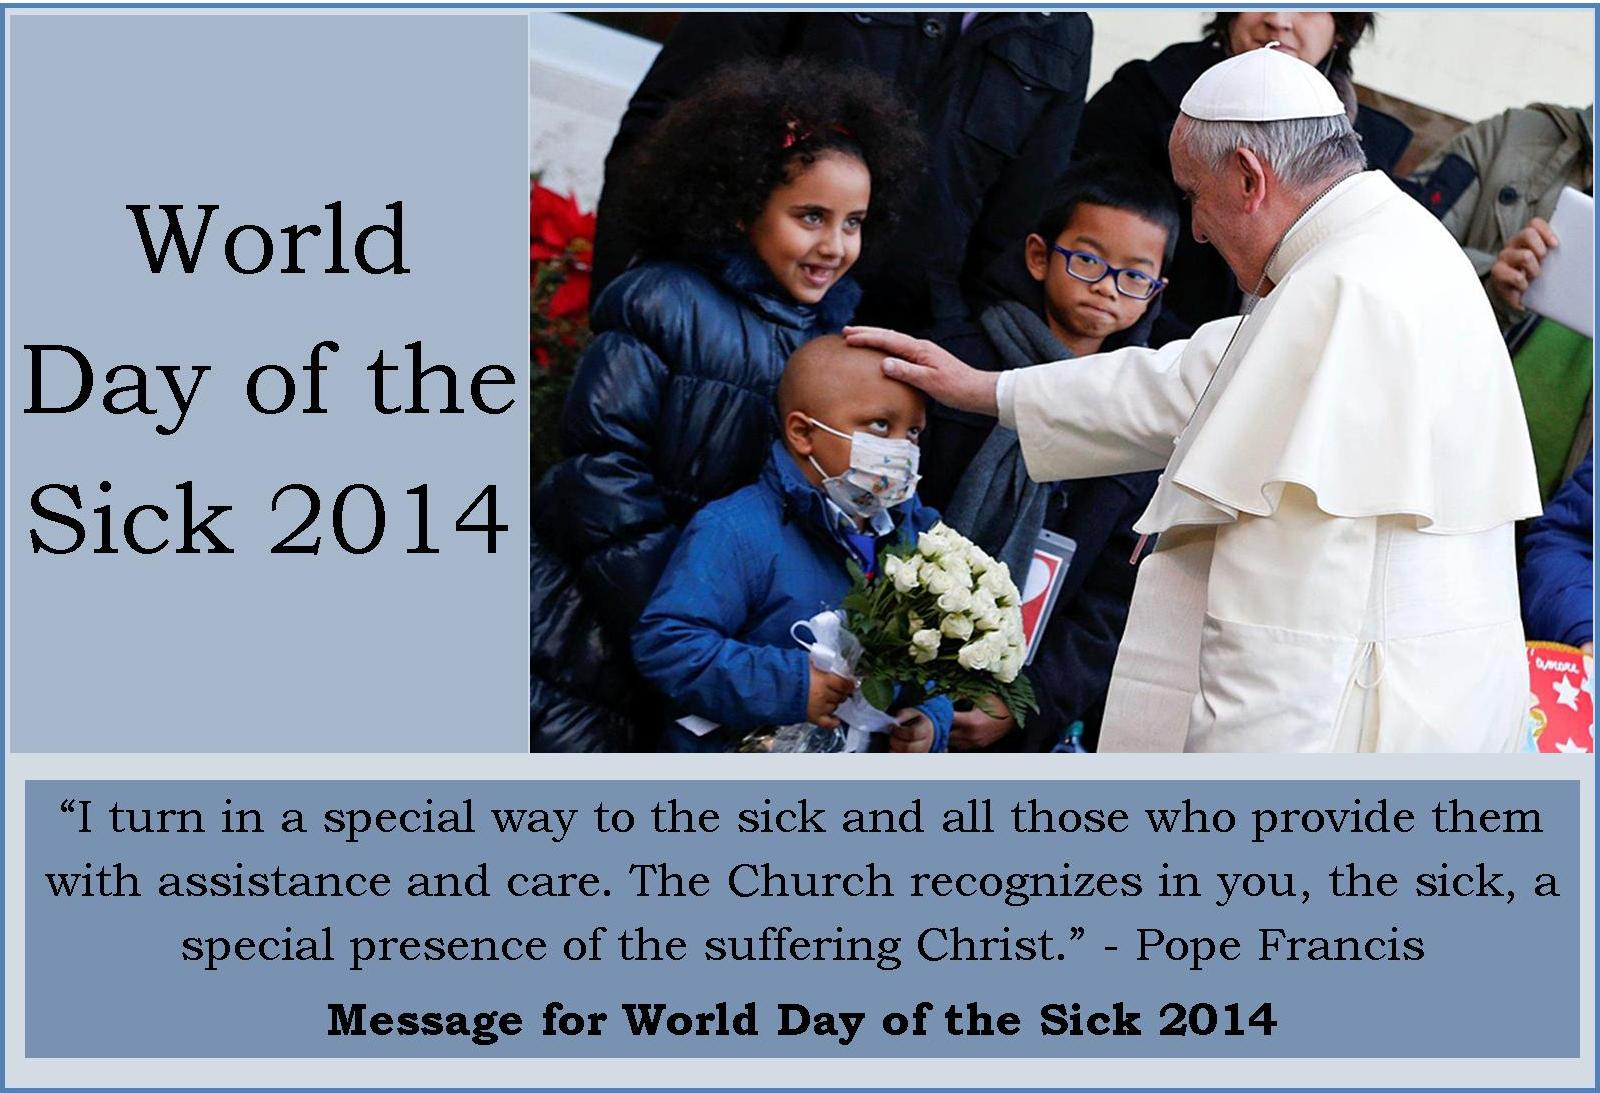 http://www.catholicbishops.ie/wp-content/uploads/2014/02/World-Day-of-the-Sick-image-20141.jpg